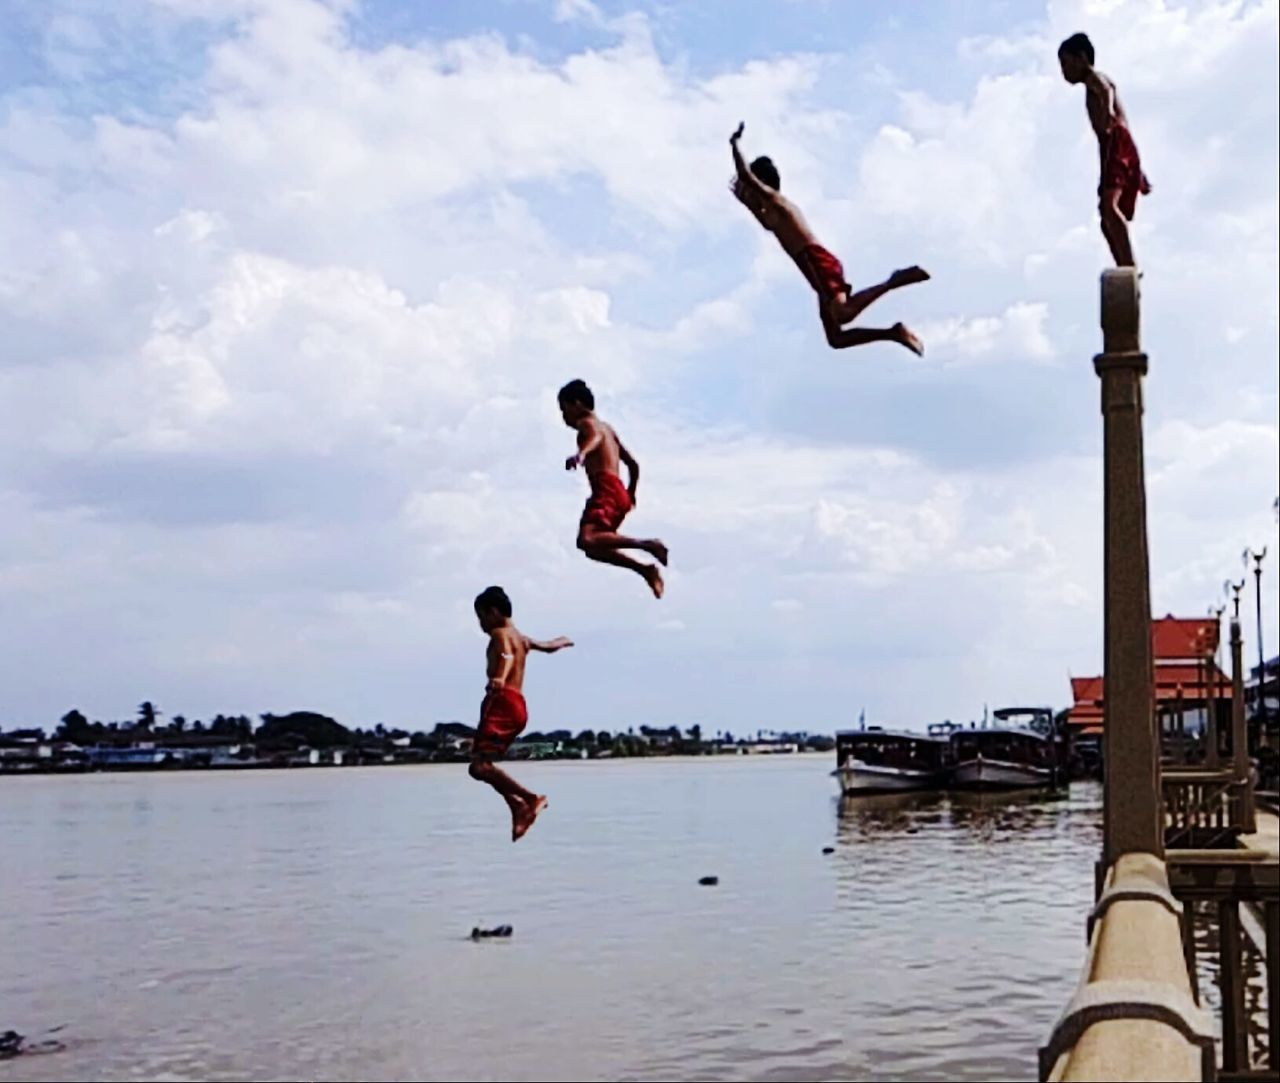 real people, mid-air, water, jumping, leisure activity, sky, lifestyles, men, full length, cloud - sky, day, outdoors, fun, enjoyment, motion, nature, vacations, skill, sea, large group of people, women, handstand, stunt, energetic, people